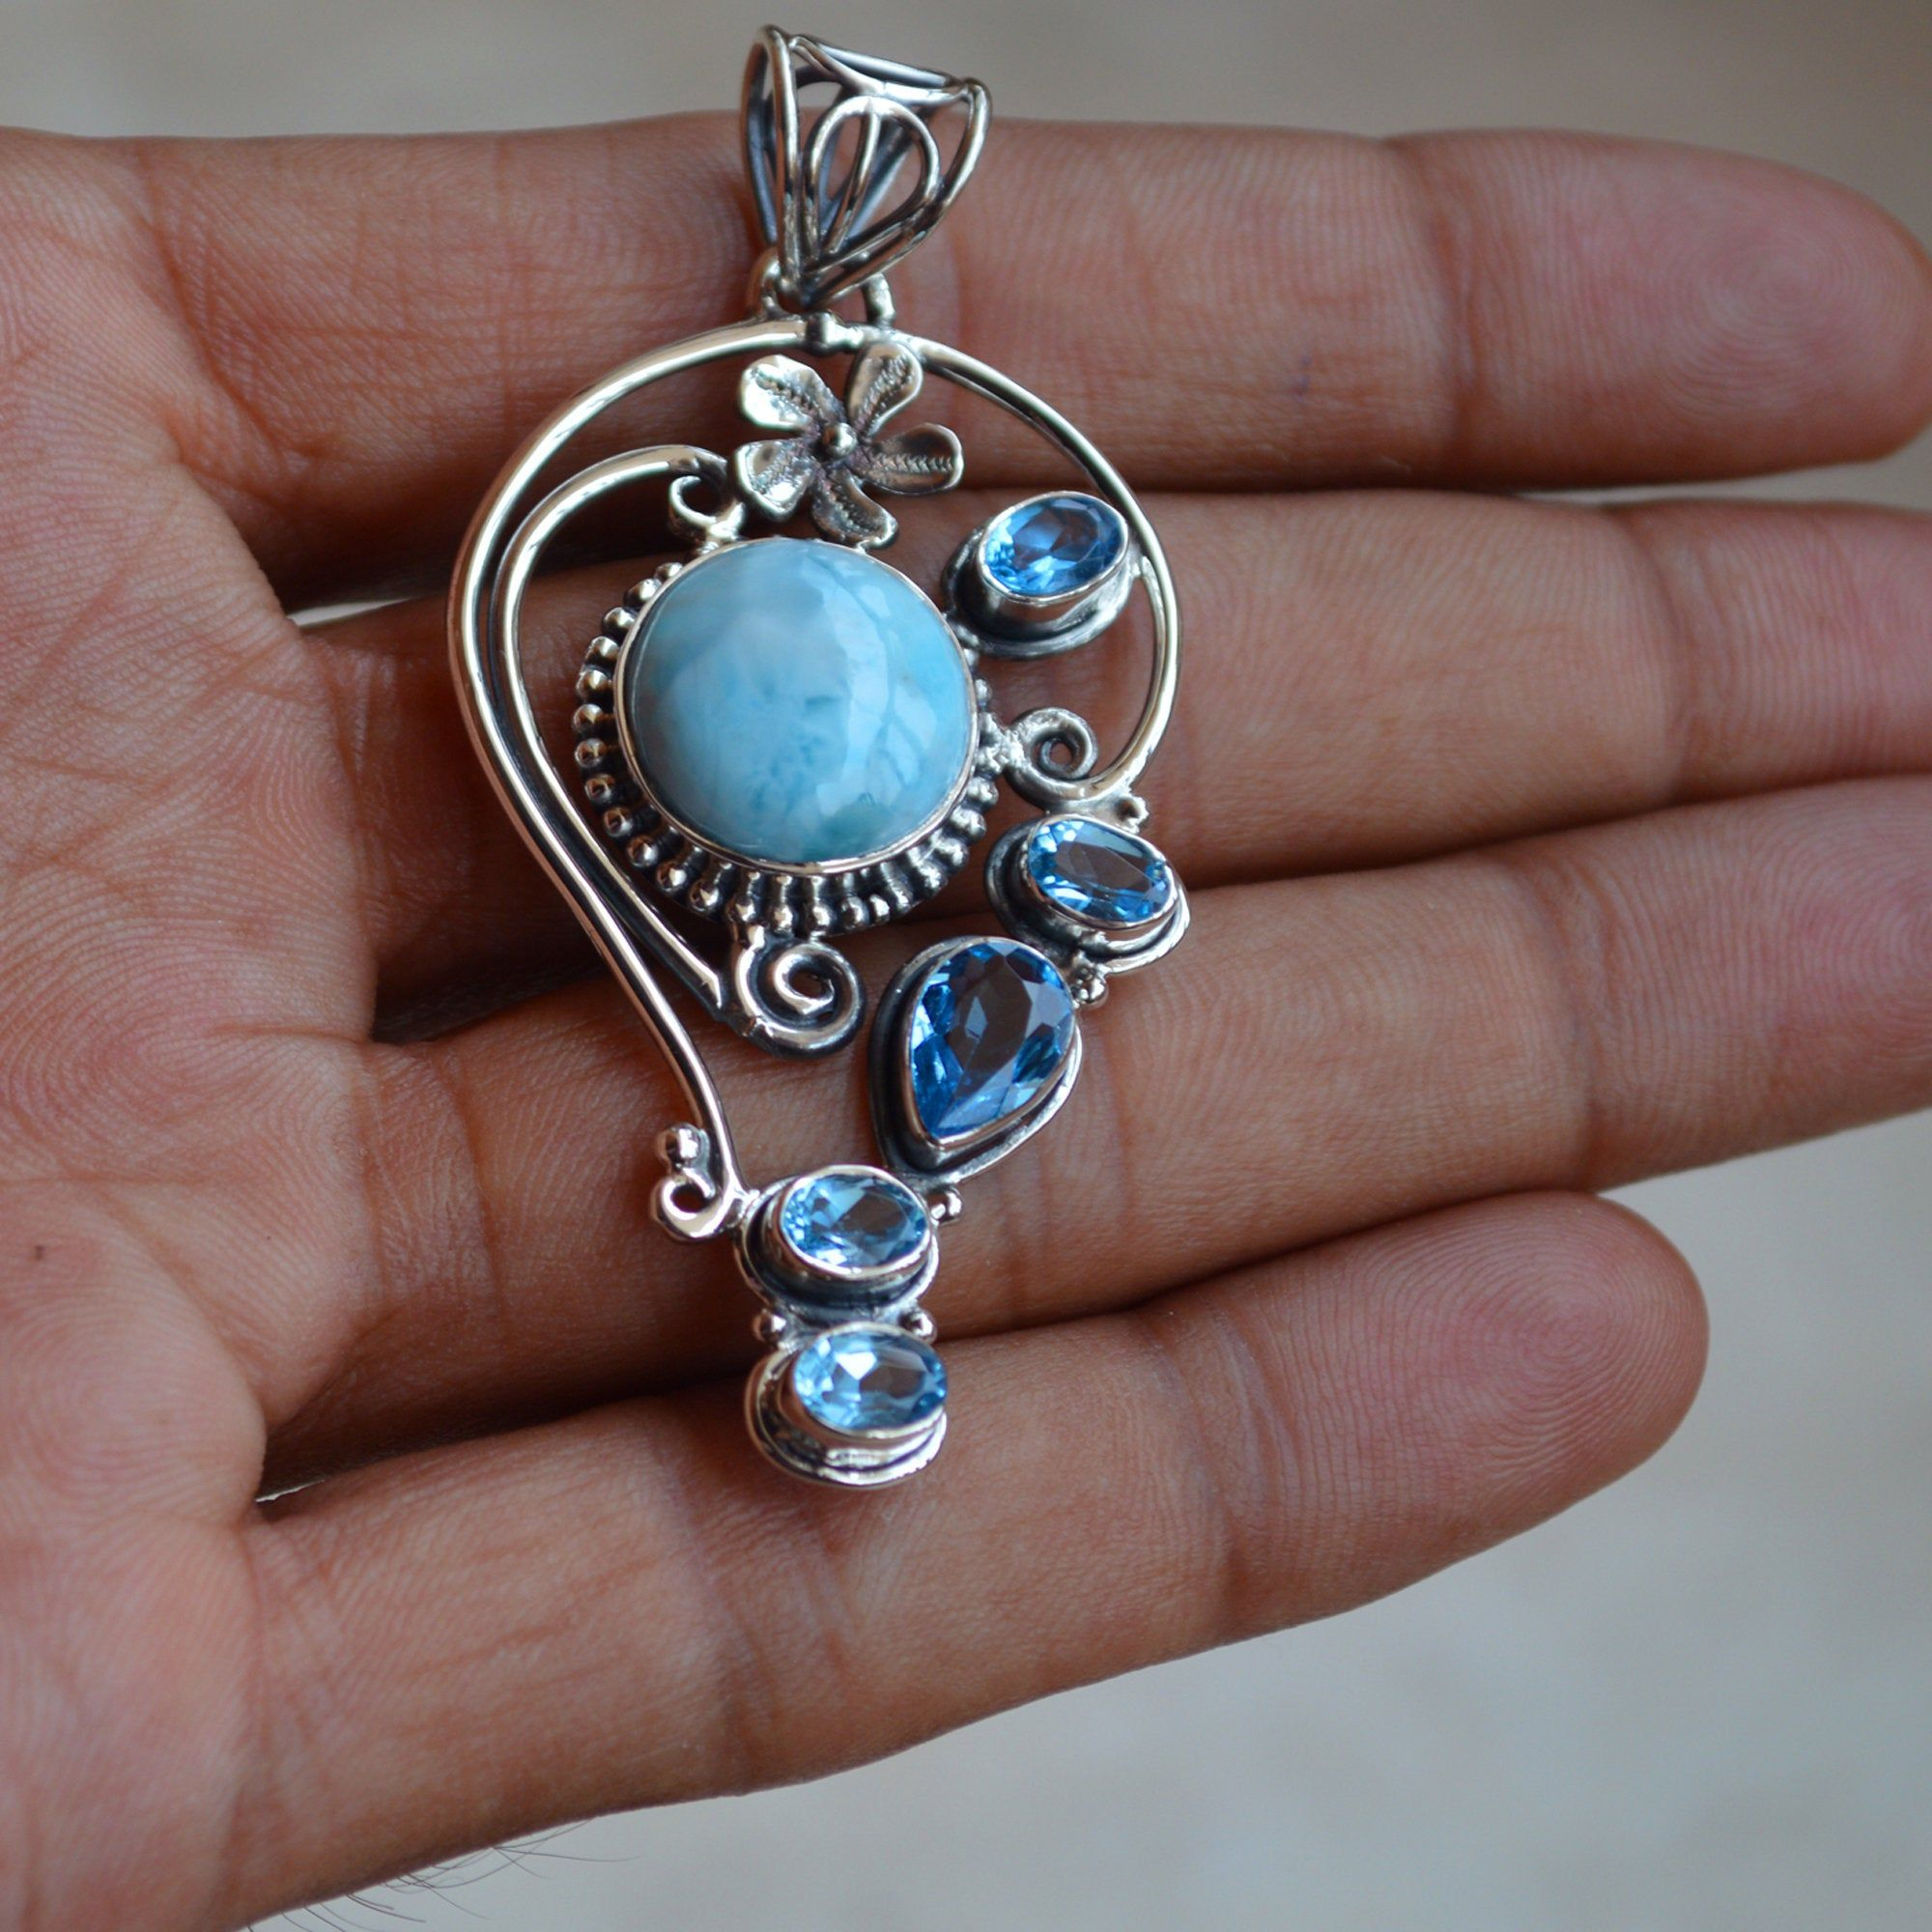 Larimar pendent silver jewellery Larimar 92.5 sterling silver pendent jewelry stone